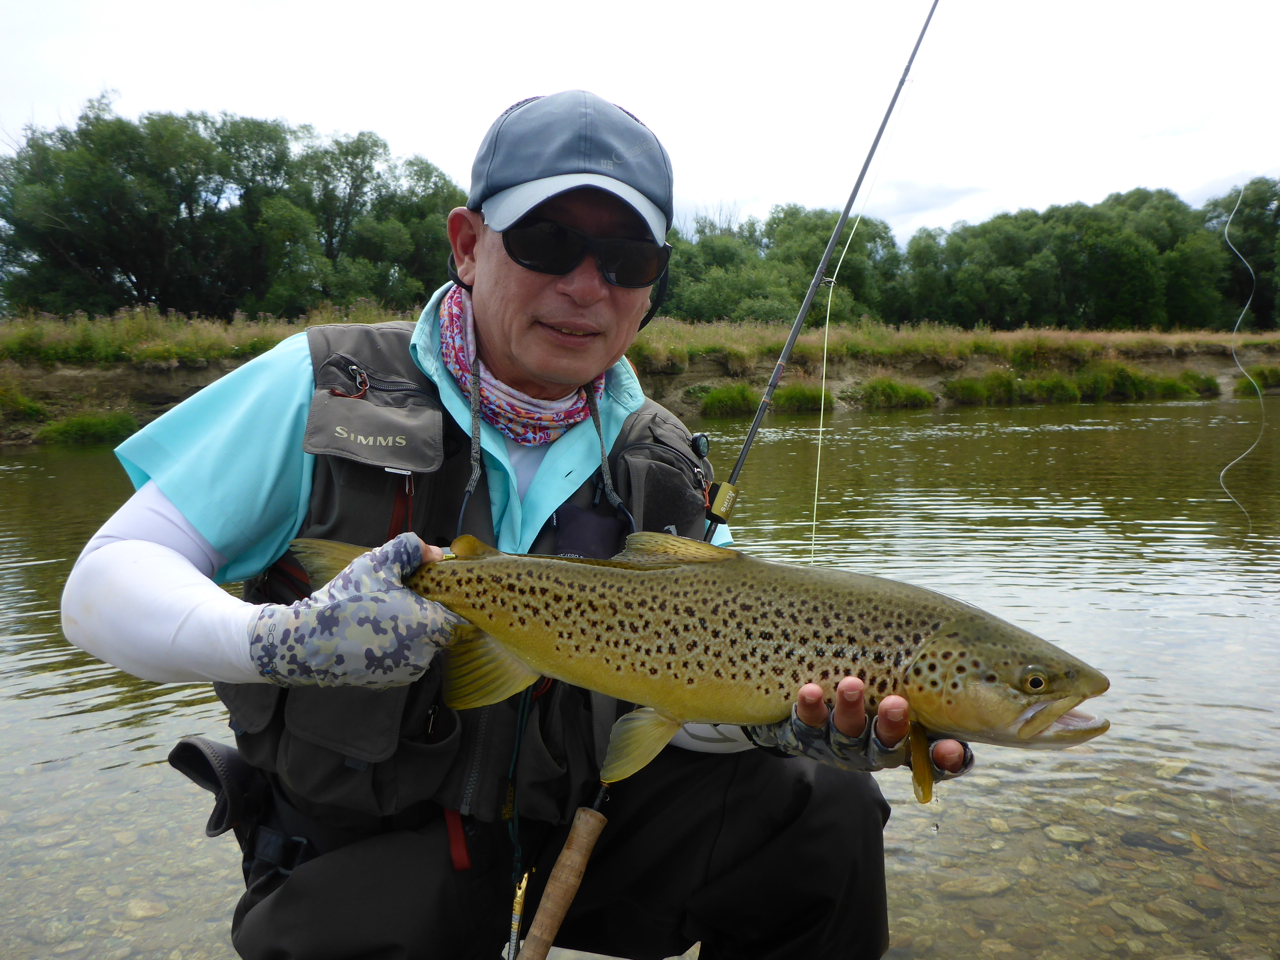 Chuan, A good angler and great craic to fish with!